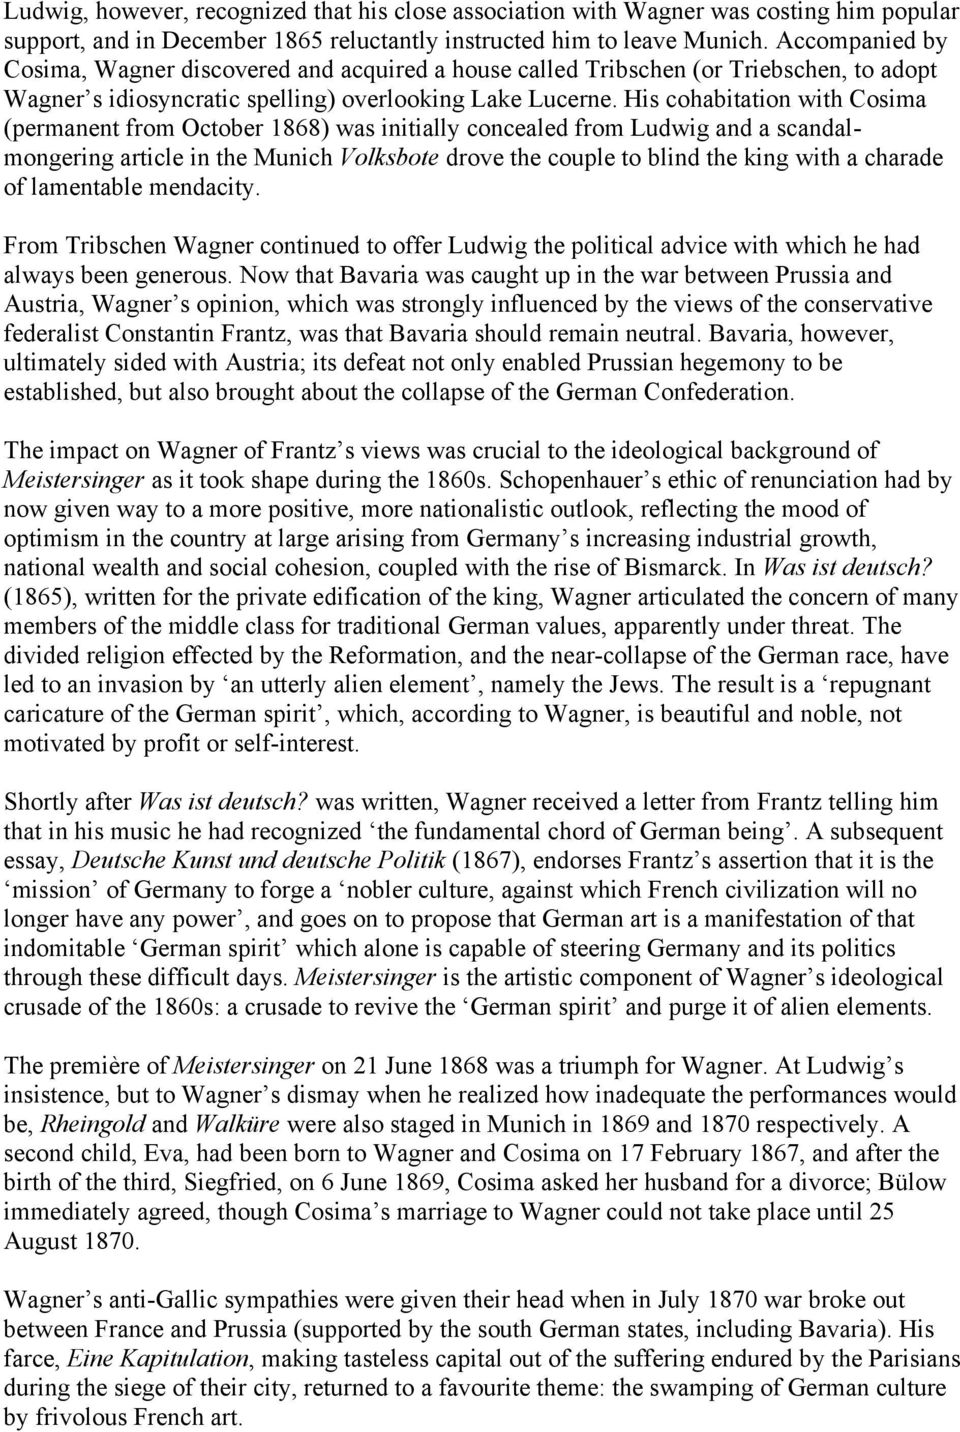 richard wagner beethoven essay Beethoven and wagner for later  in this essay i will illustrate the aforementioned  amazing for us to see how richard wagner interpreted beethoven's idea in.